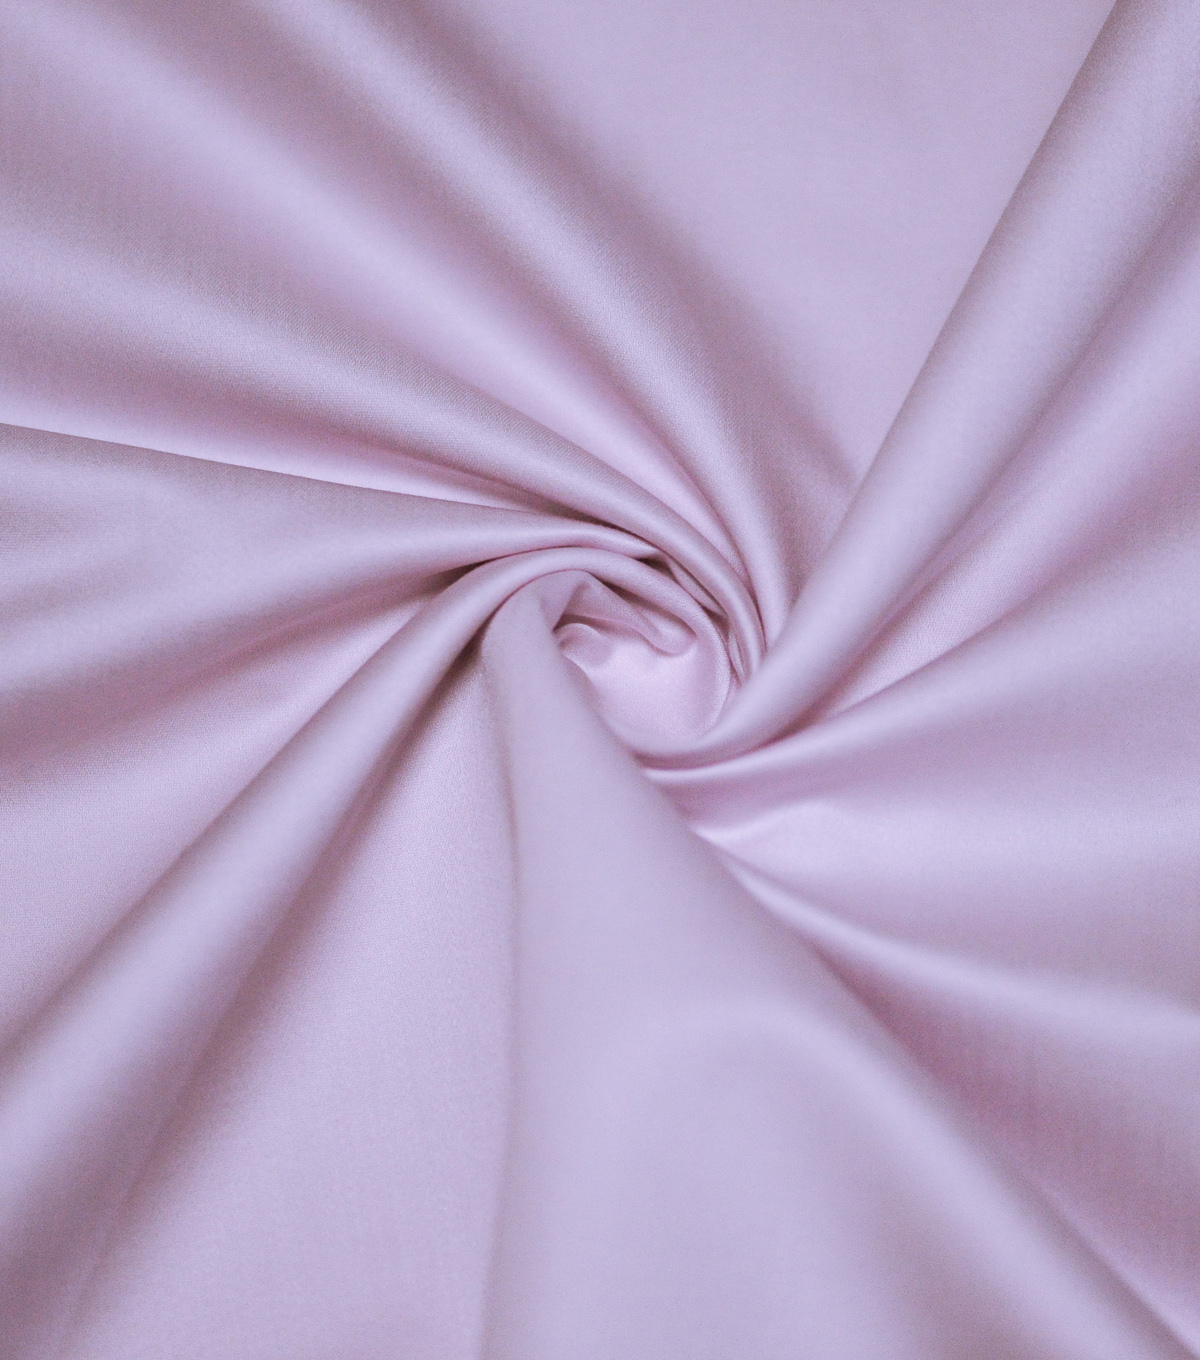 Supima Sateen Cotton Fabric-Solids, Soft Pink